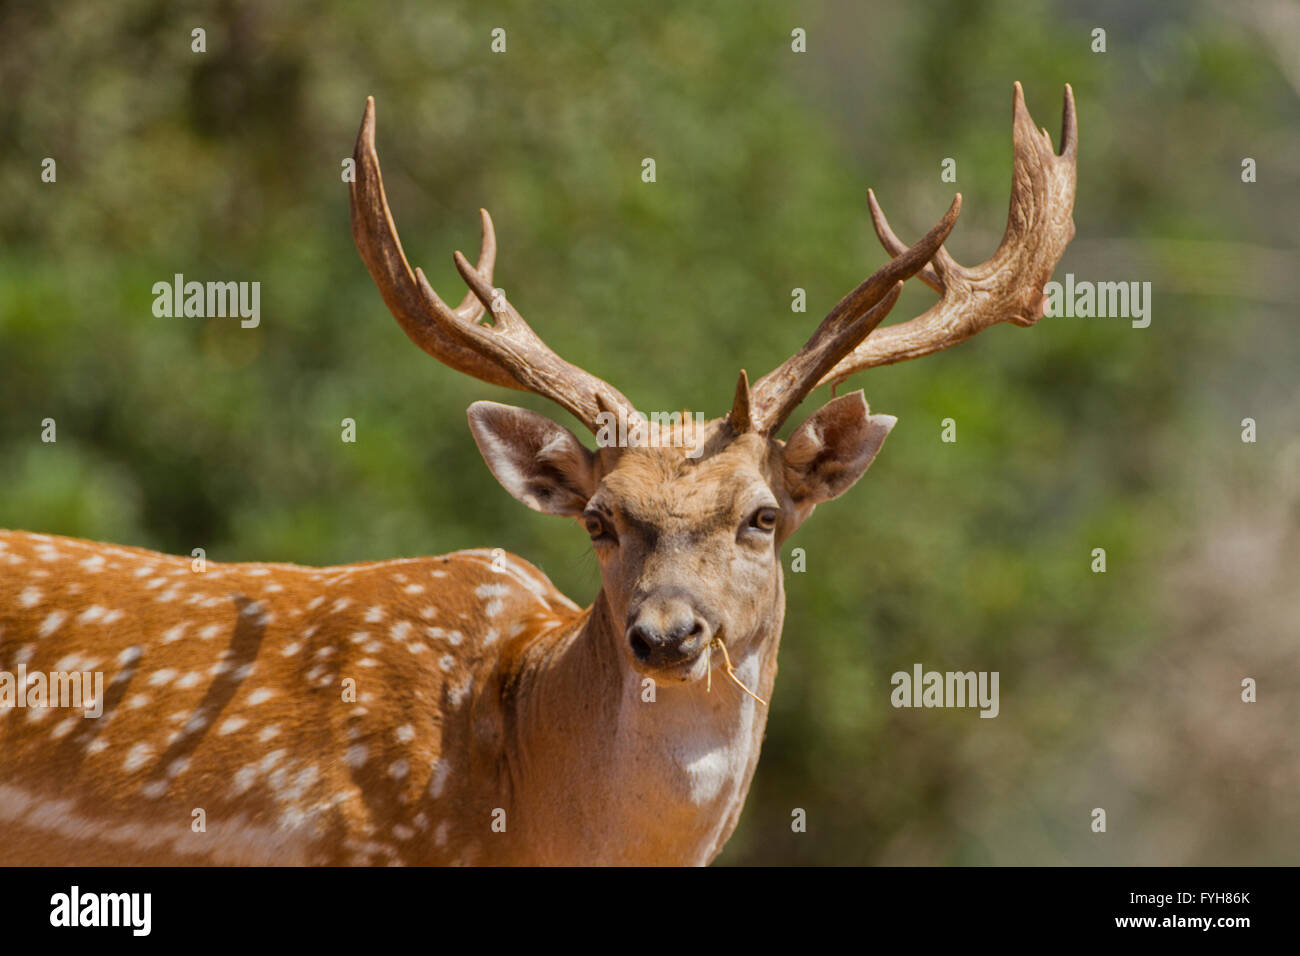 Male Mesopotamian Fallow deer (Dama mesopotamica) Photographed in Israel Carmel forest in July - Stock Image